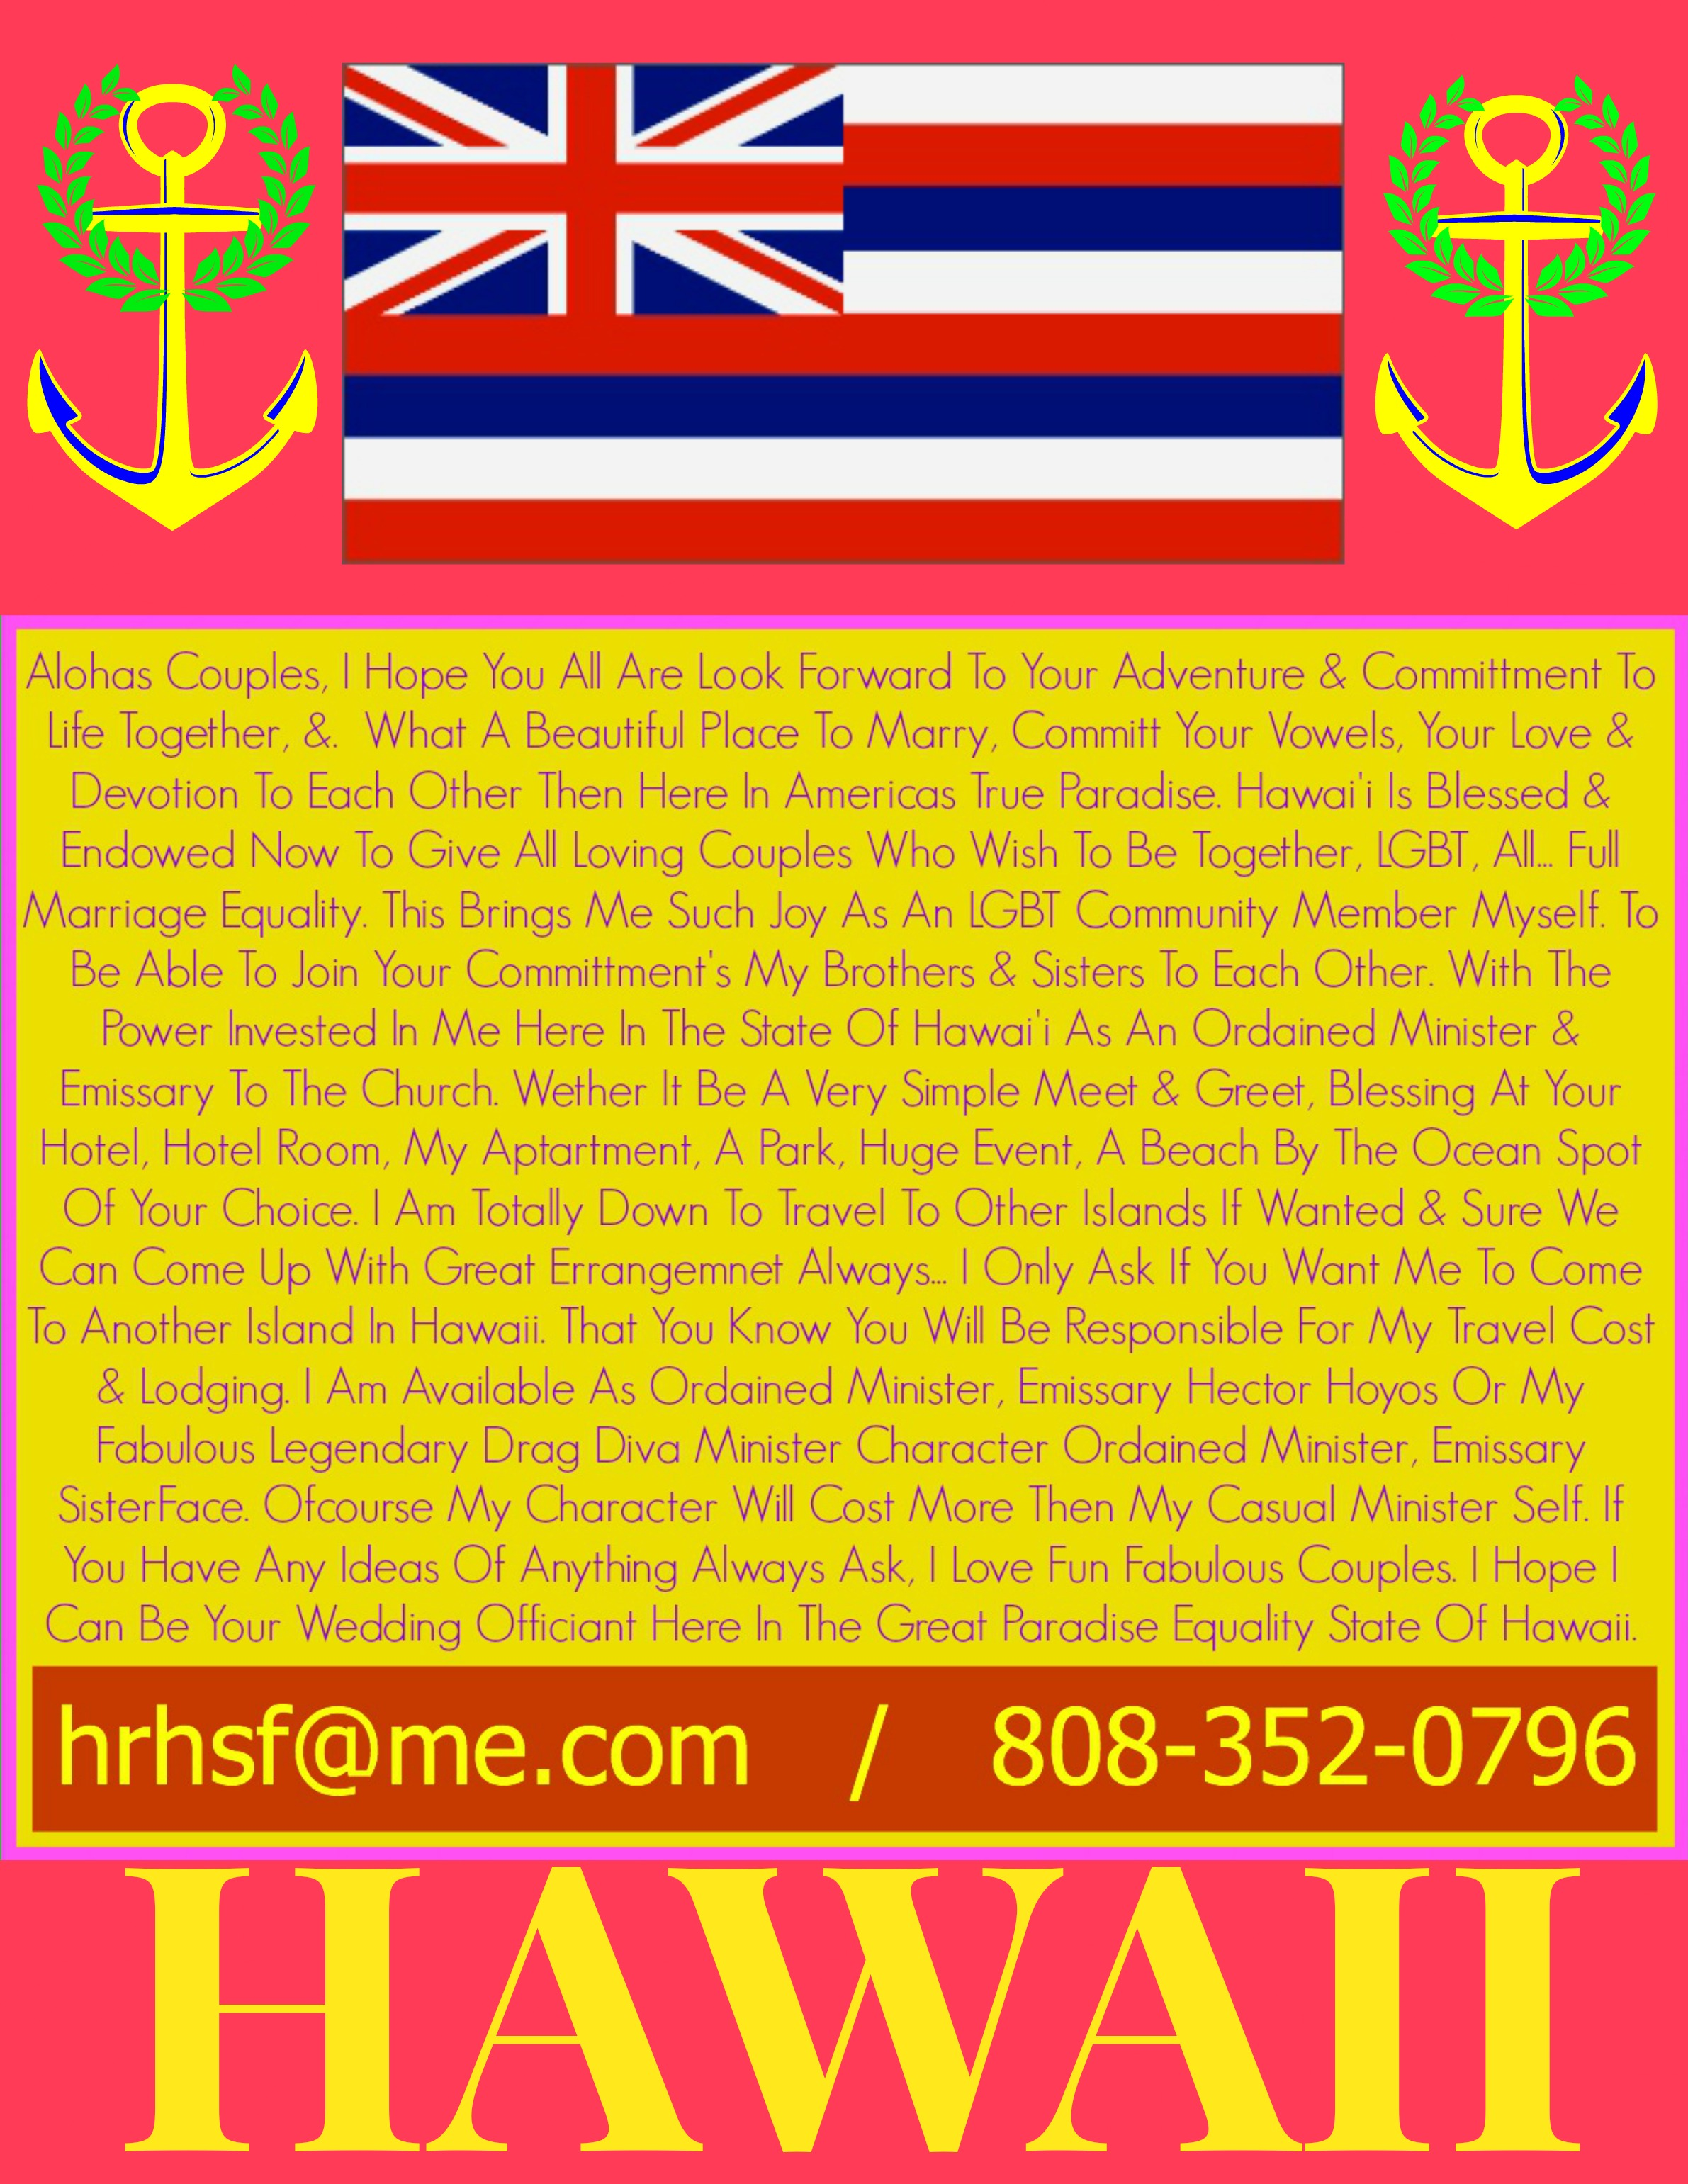 Wedding Information, LGBT Weddings In Hawaii, All Weddings, Hawaii LGBT Weddings Minister